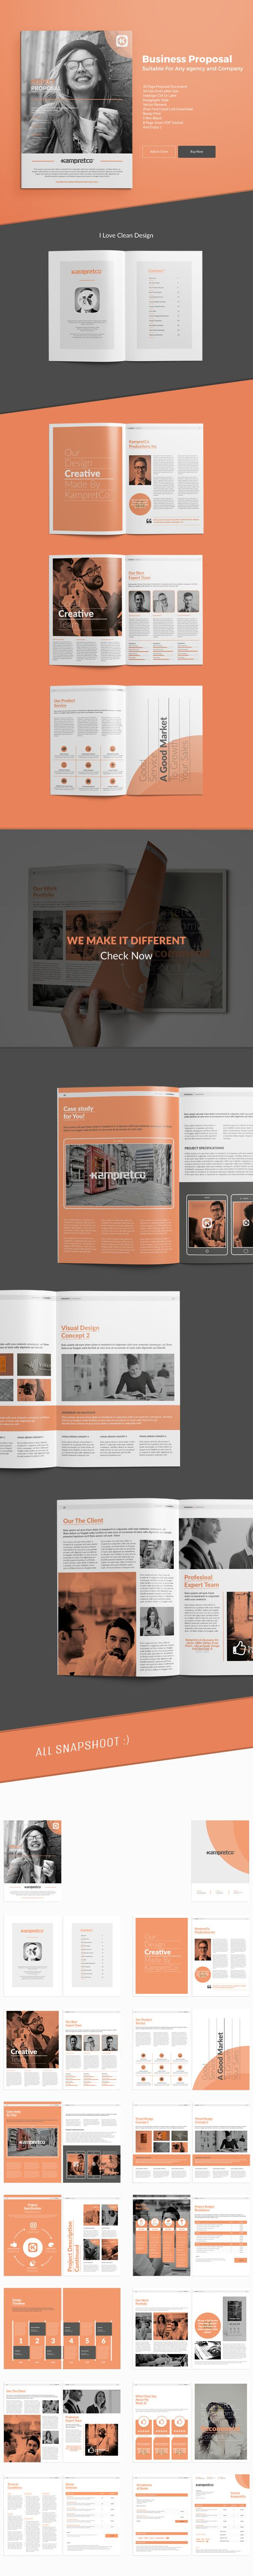 A4 Agency Proposal Brand Brief Brochure Design Business